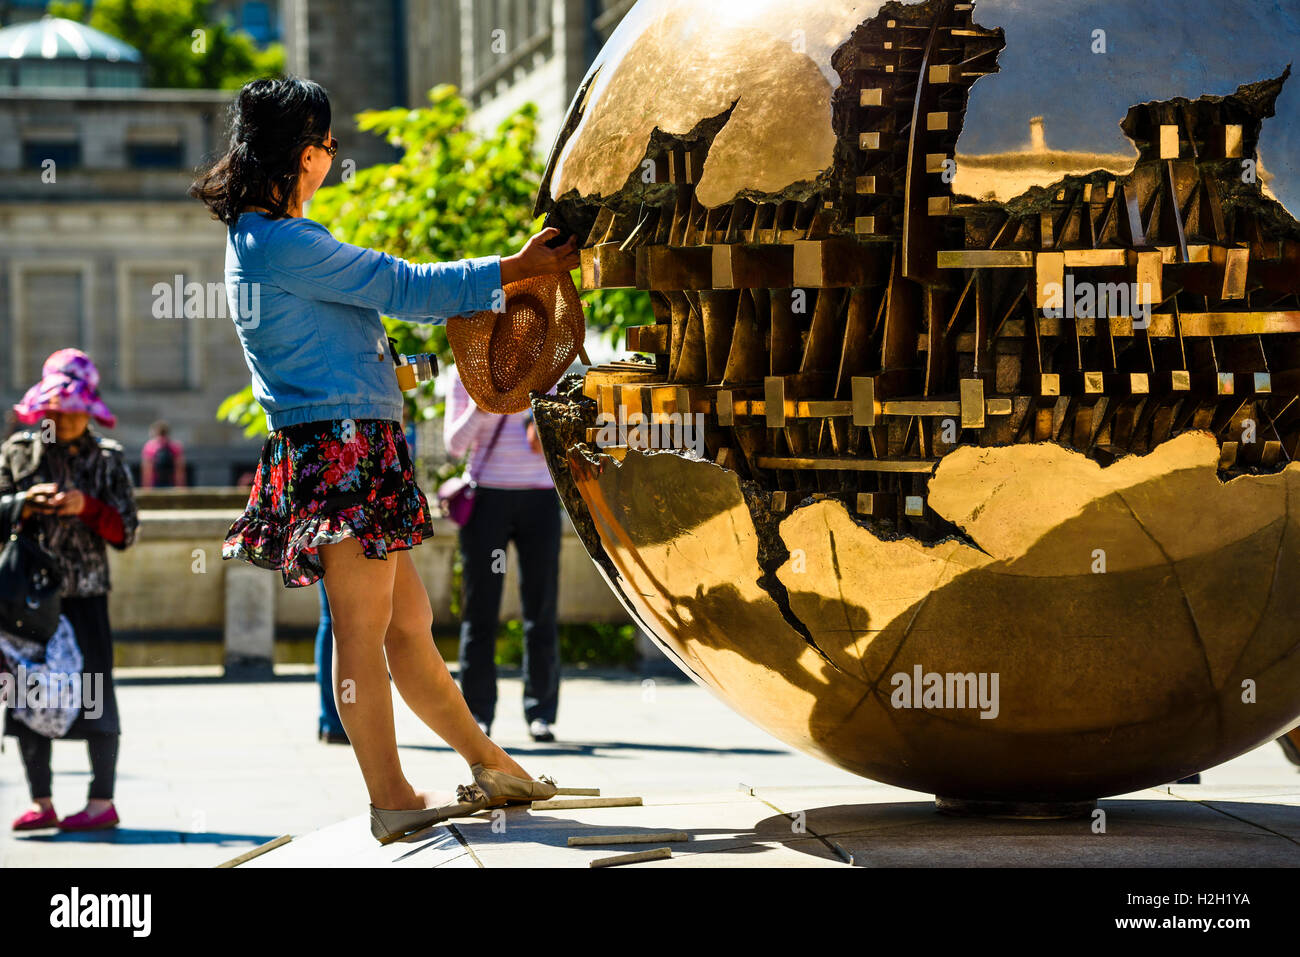 Visitors enjoy Sphere Within Sphere (Sfera con sfera) sculpture by Arnaldo Pomodoro, Trinity College Dublin, Ireland - Stock Image